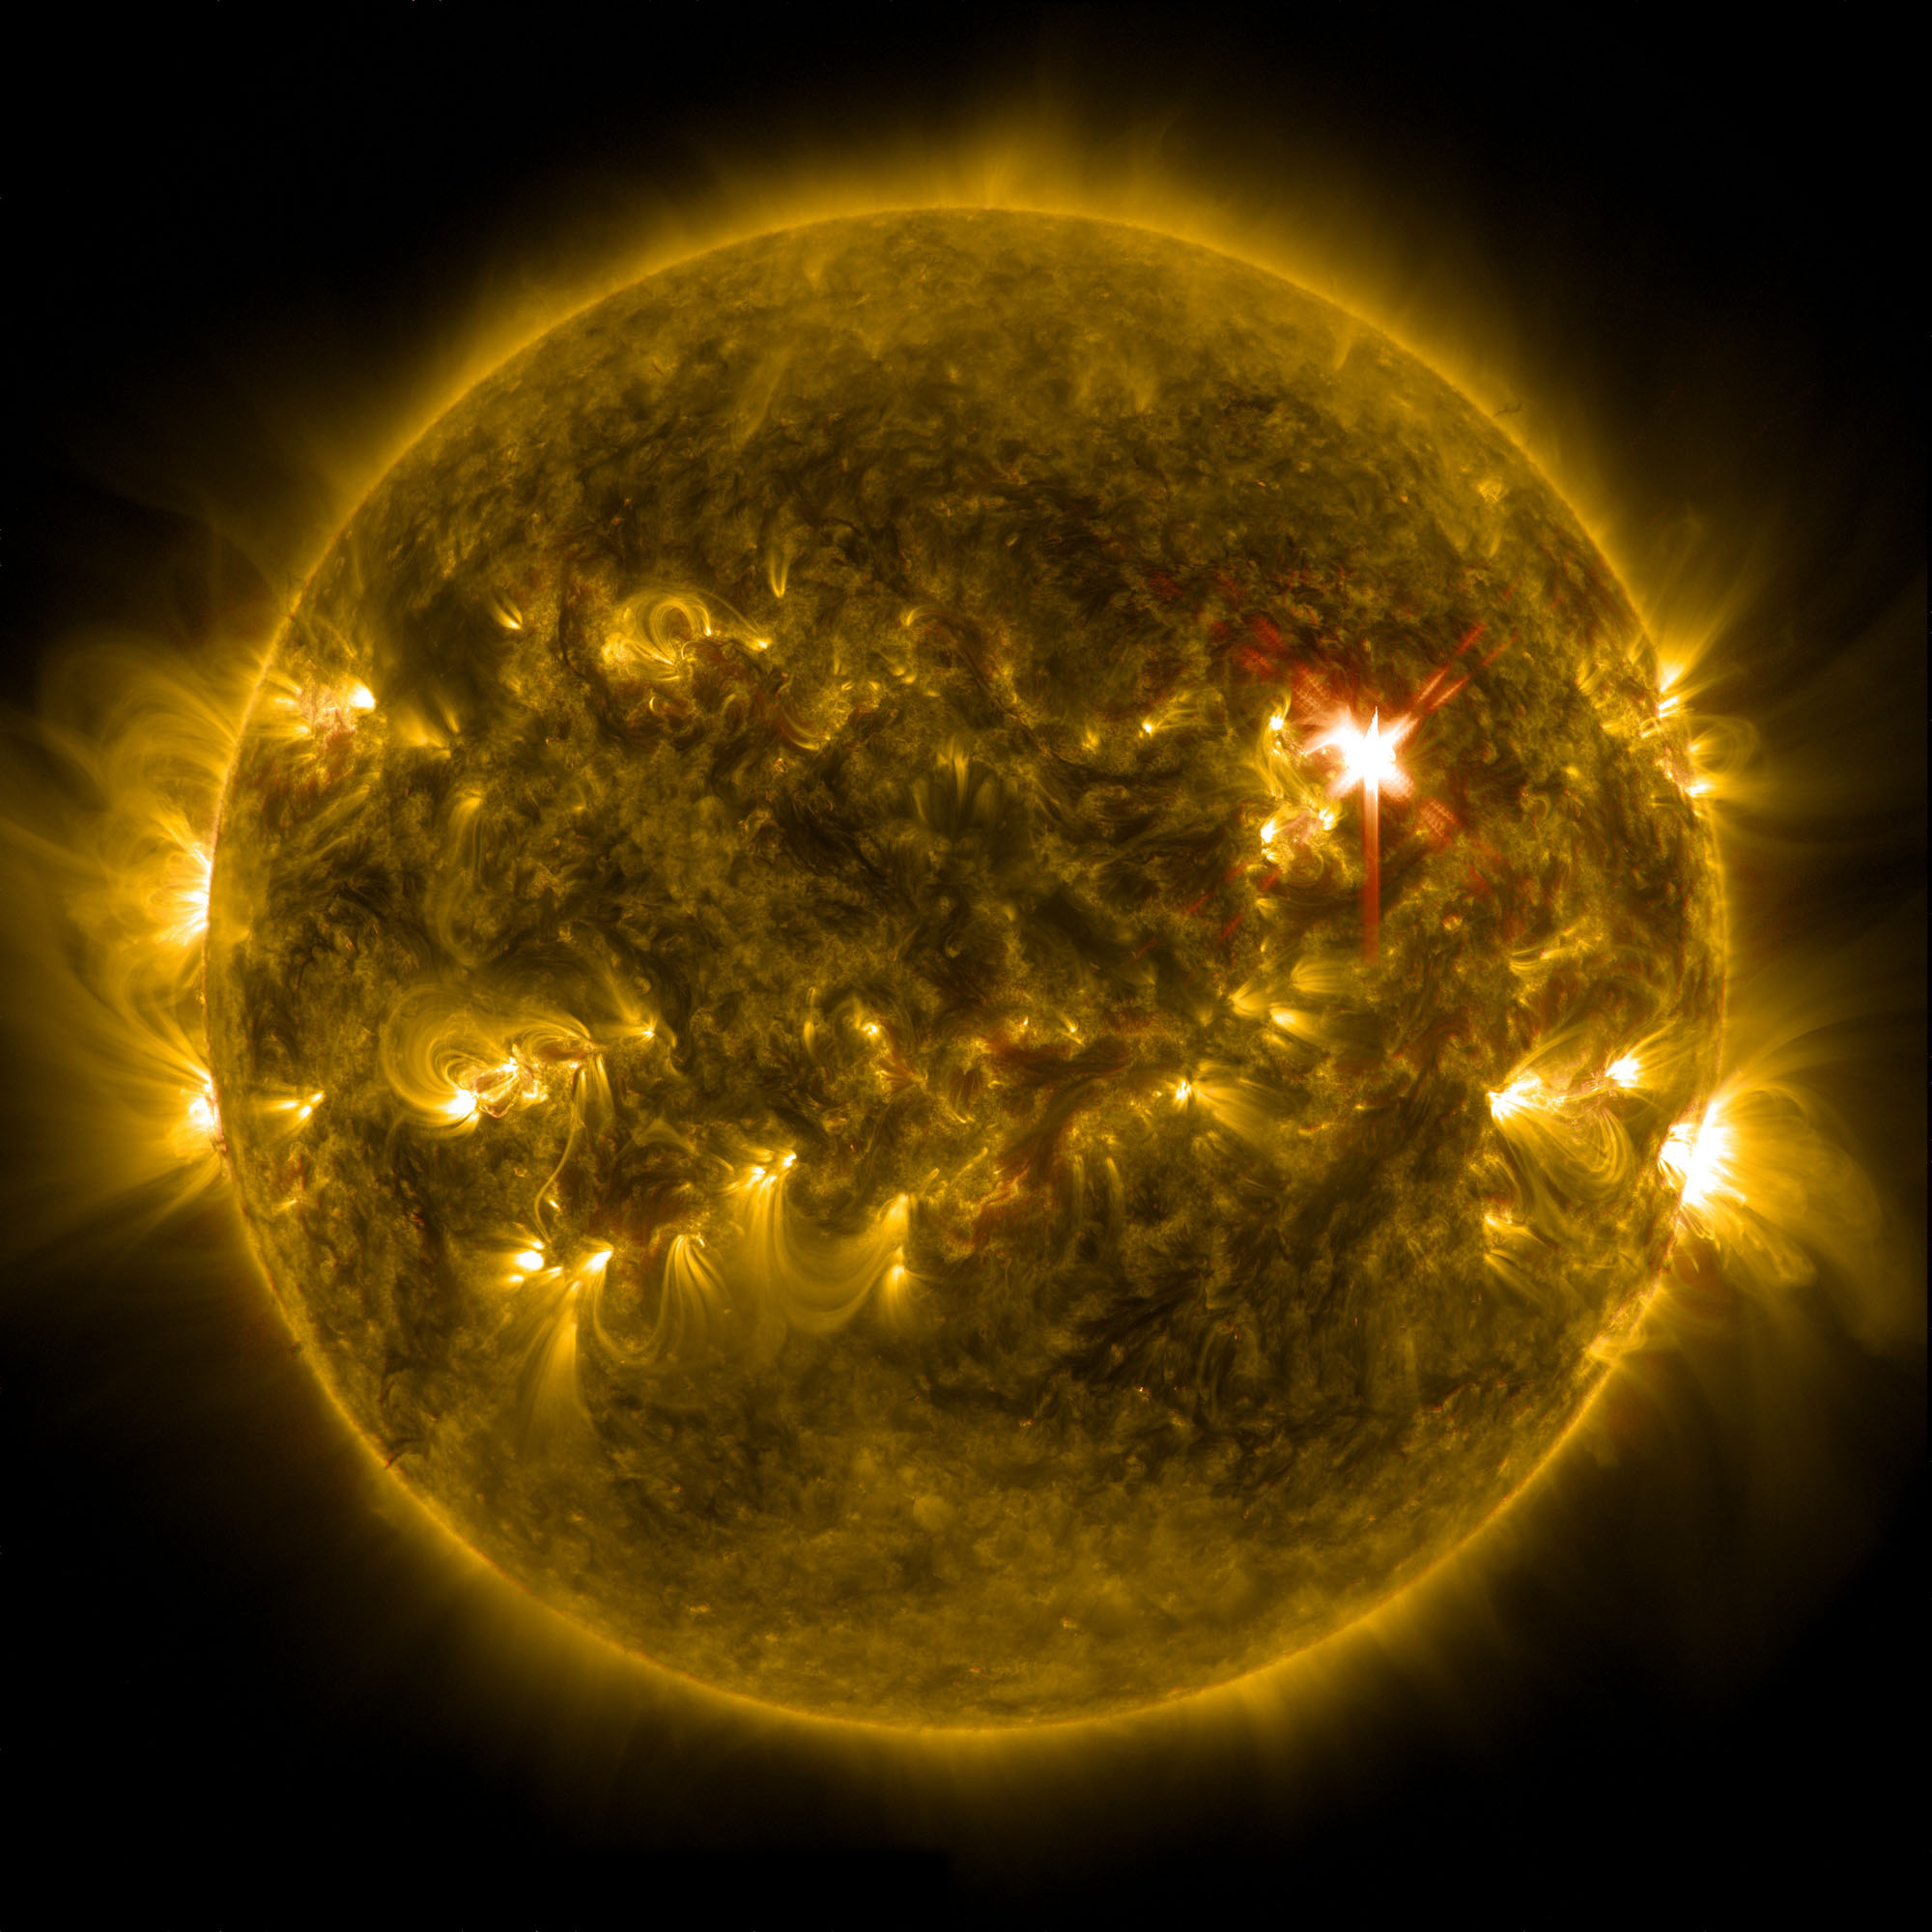 X1 Solar Flare of March 29, 2014: Full Disk View